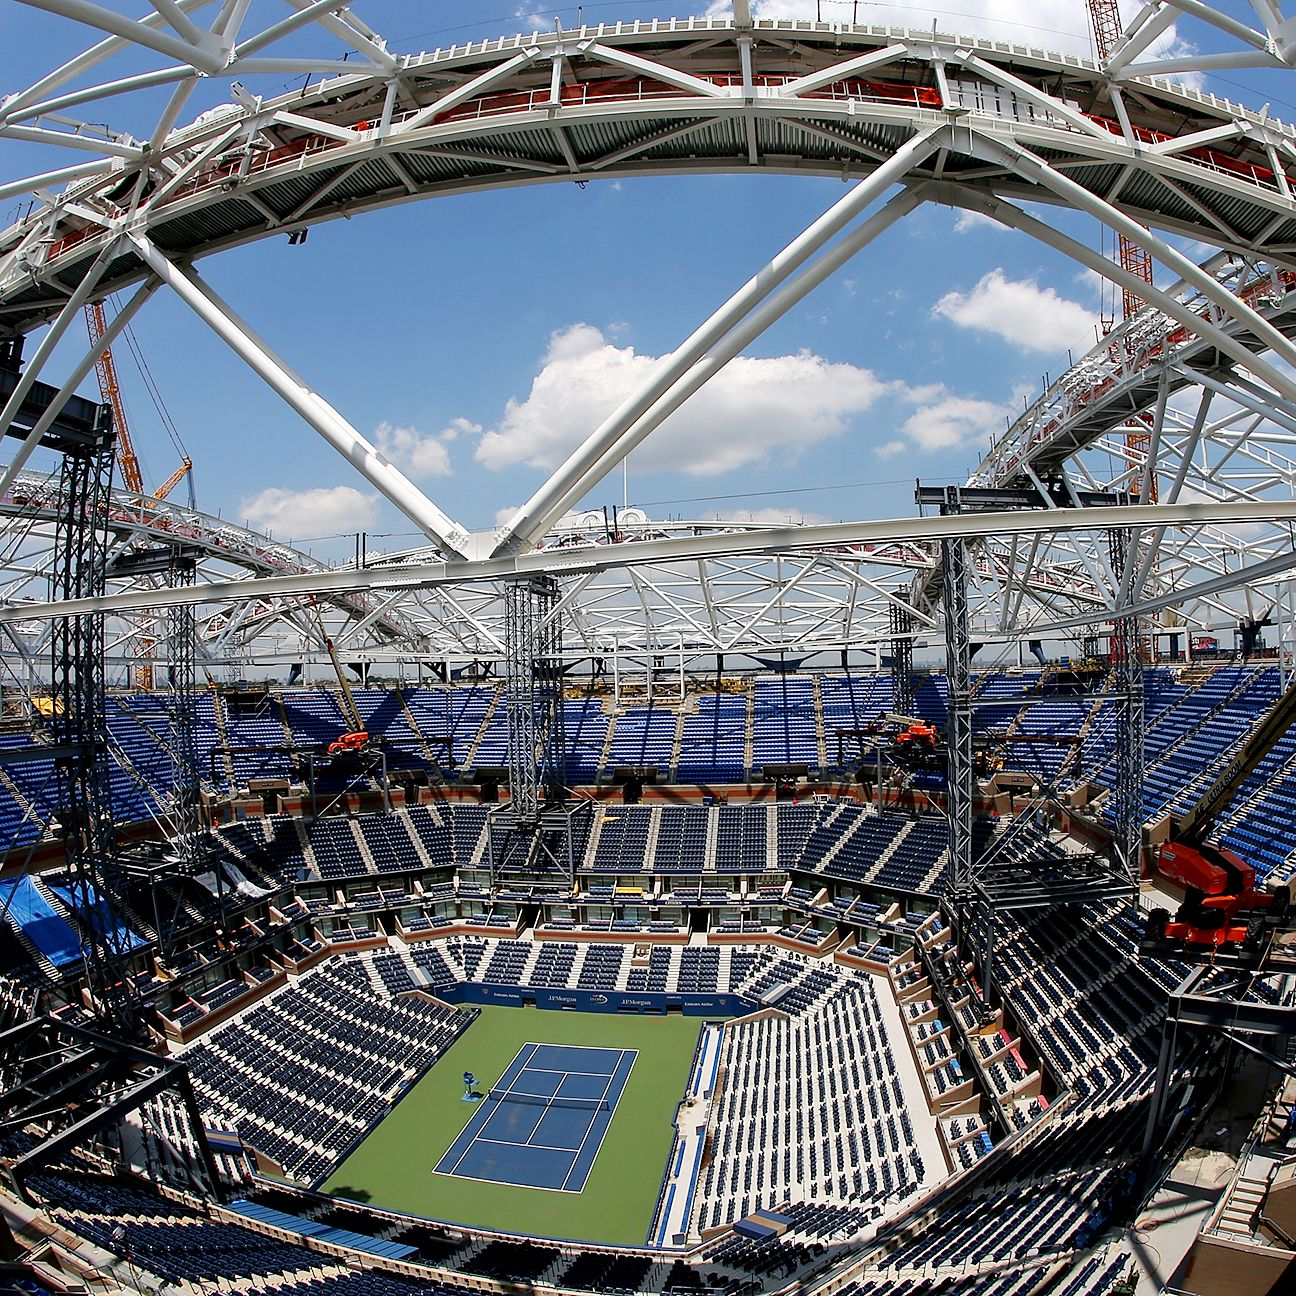 Superstructure: US Open -- Steel Superstructure In Place For New Arthur